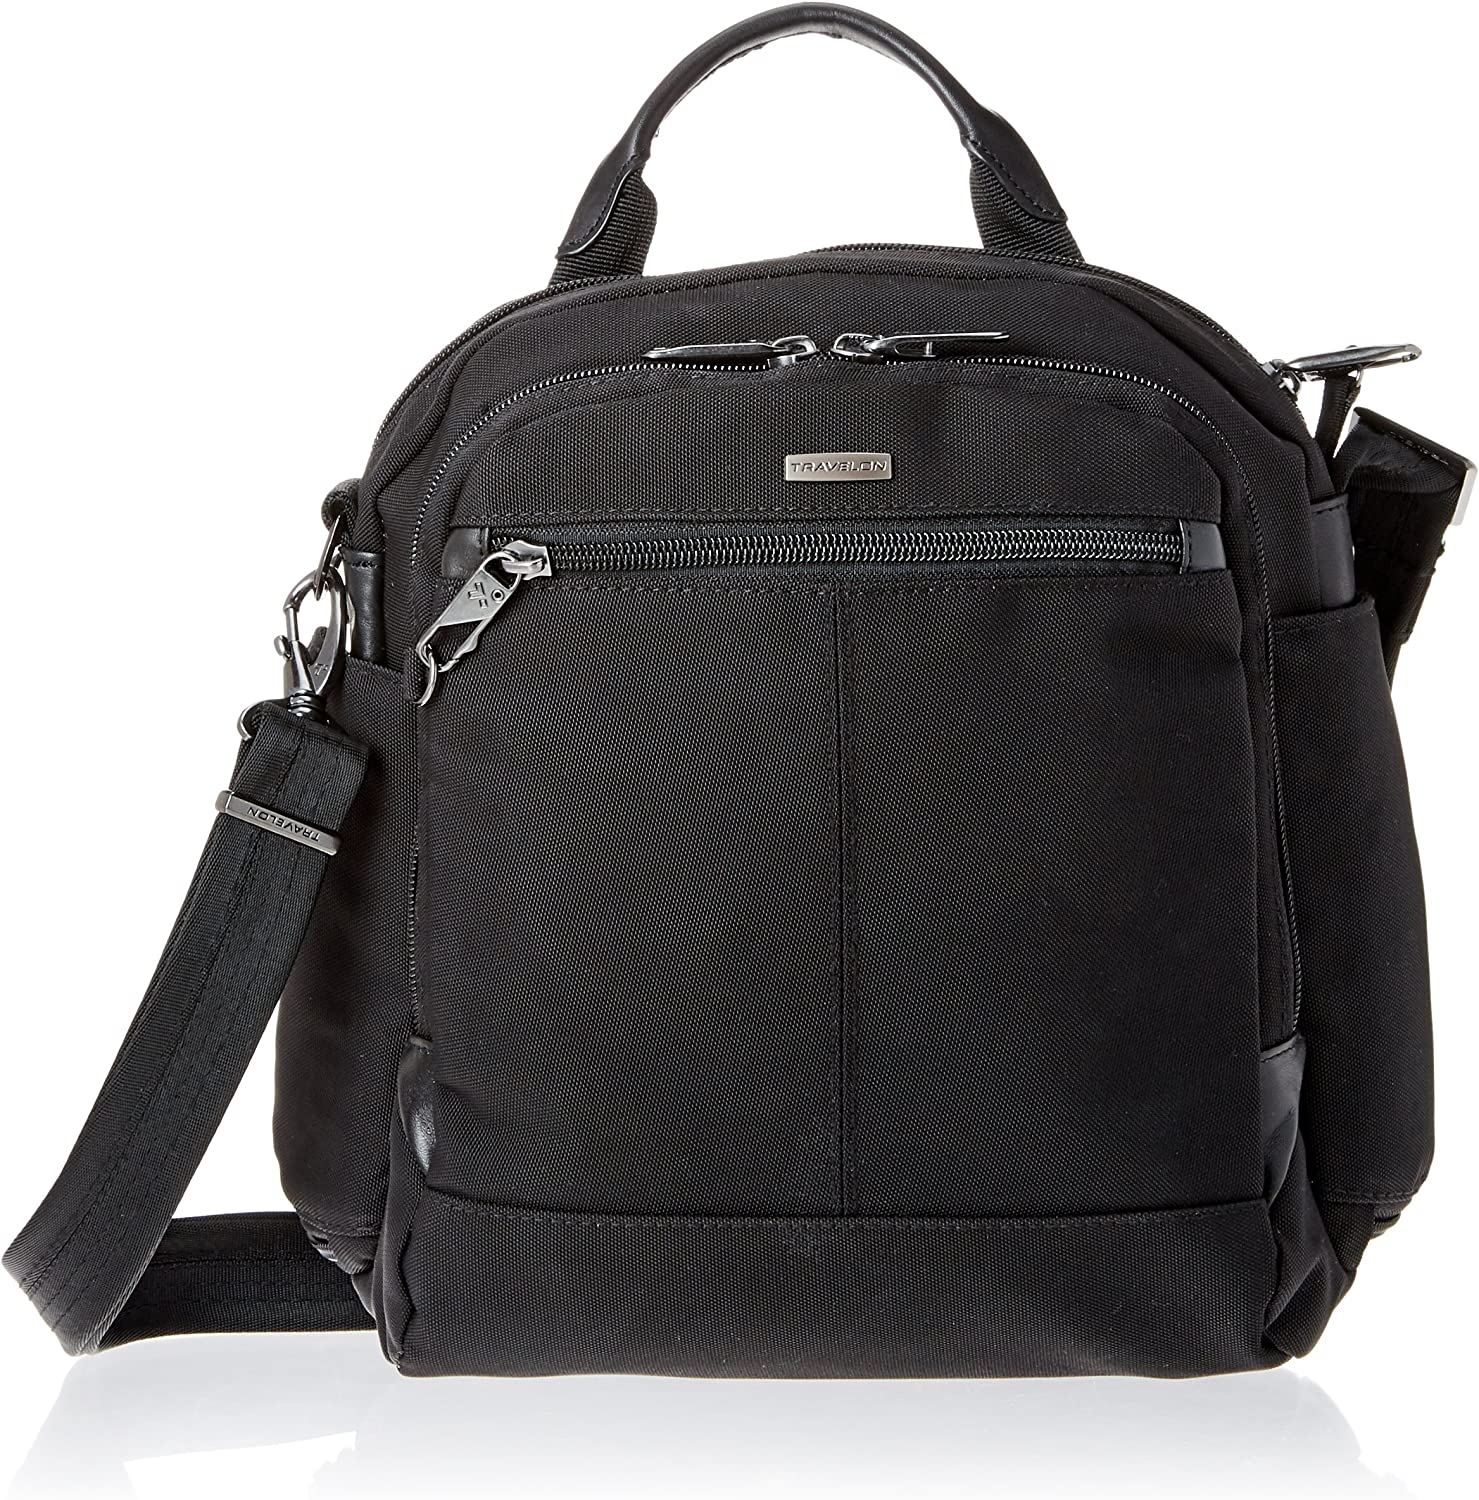 Travelon Anti-Theft Concealed Carry Tour Bag, Black, One Size